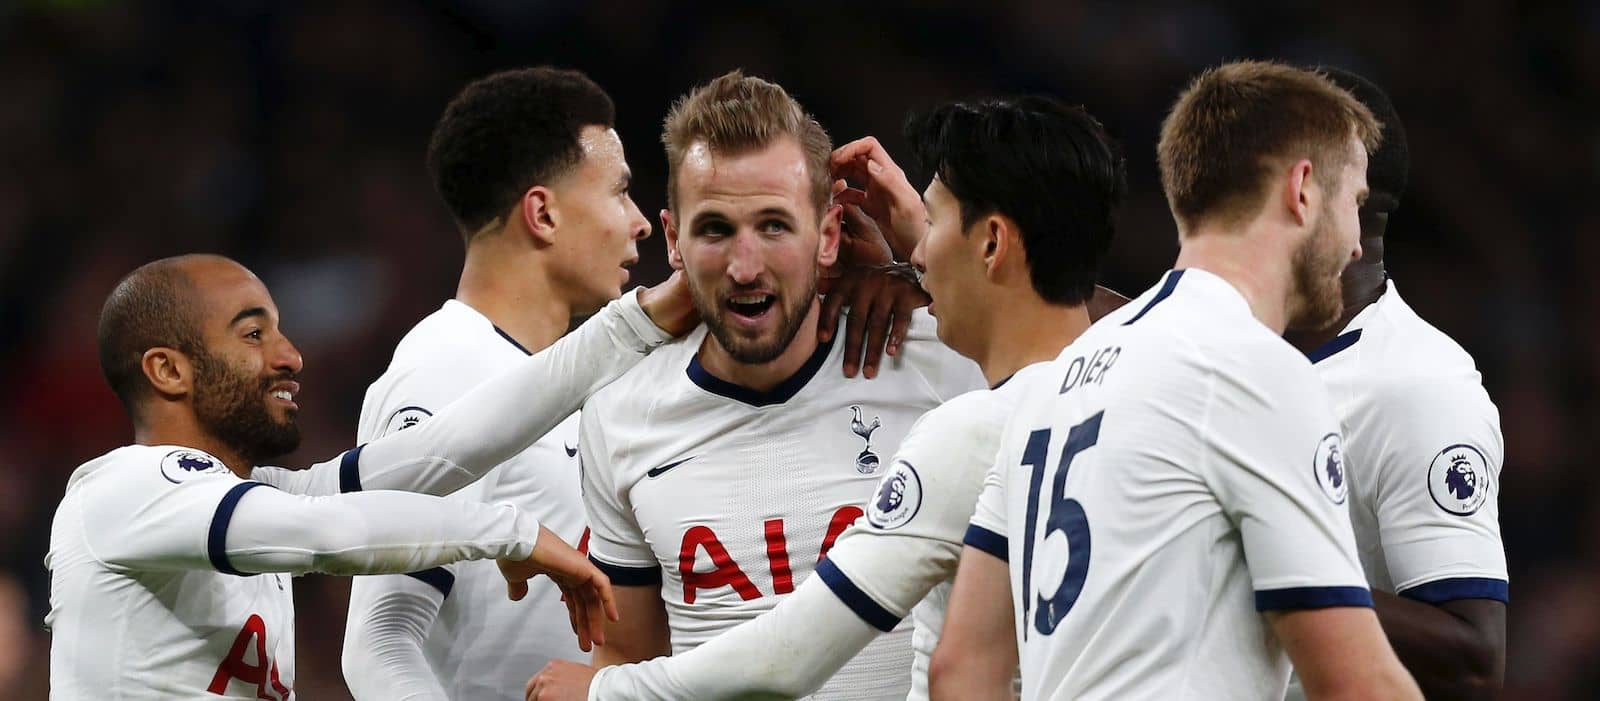 Harry Kane to Manchester United: separating fact from fiction